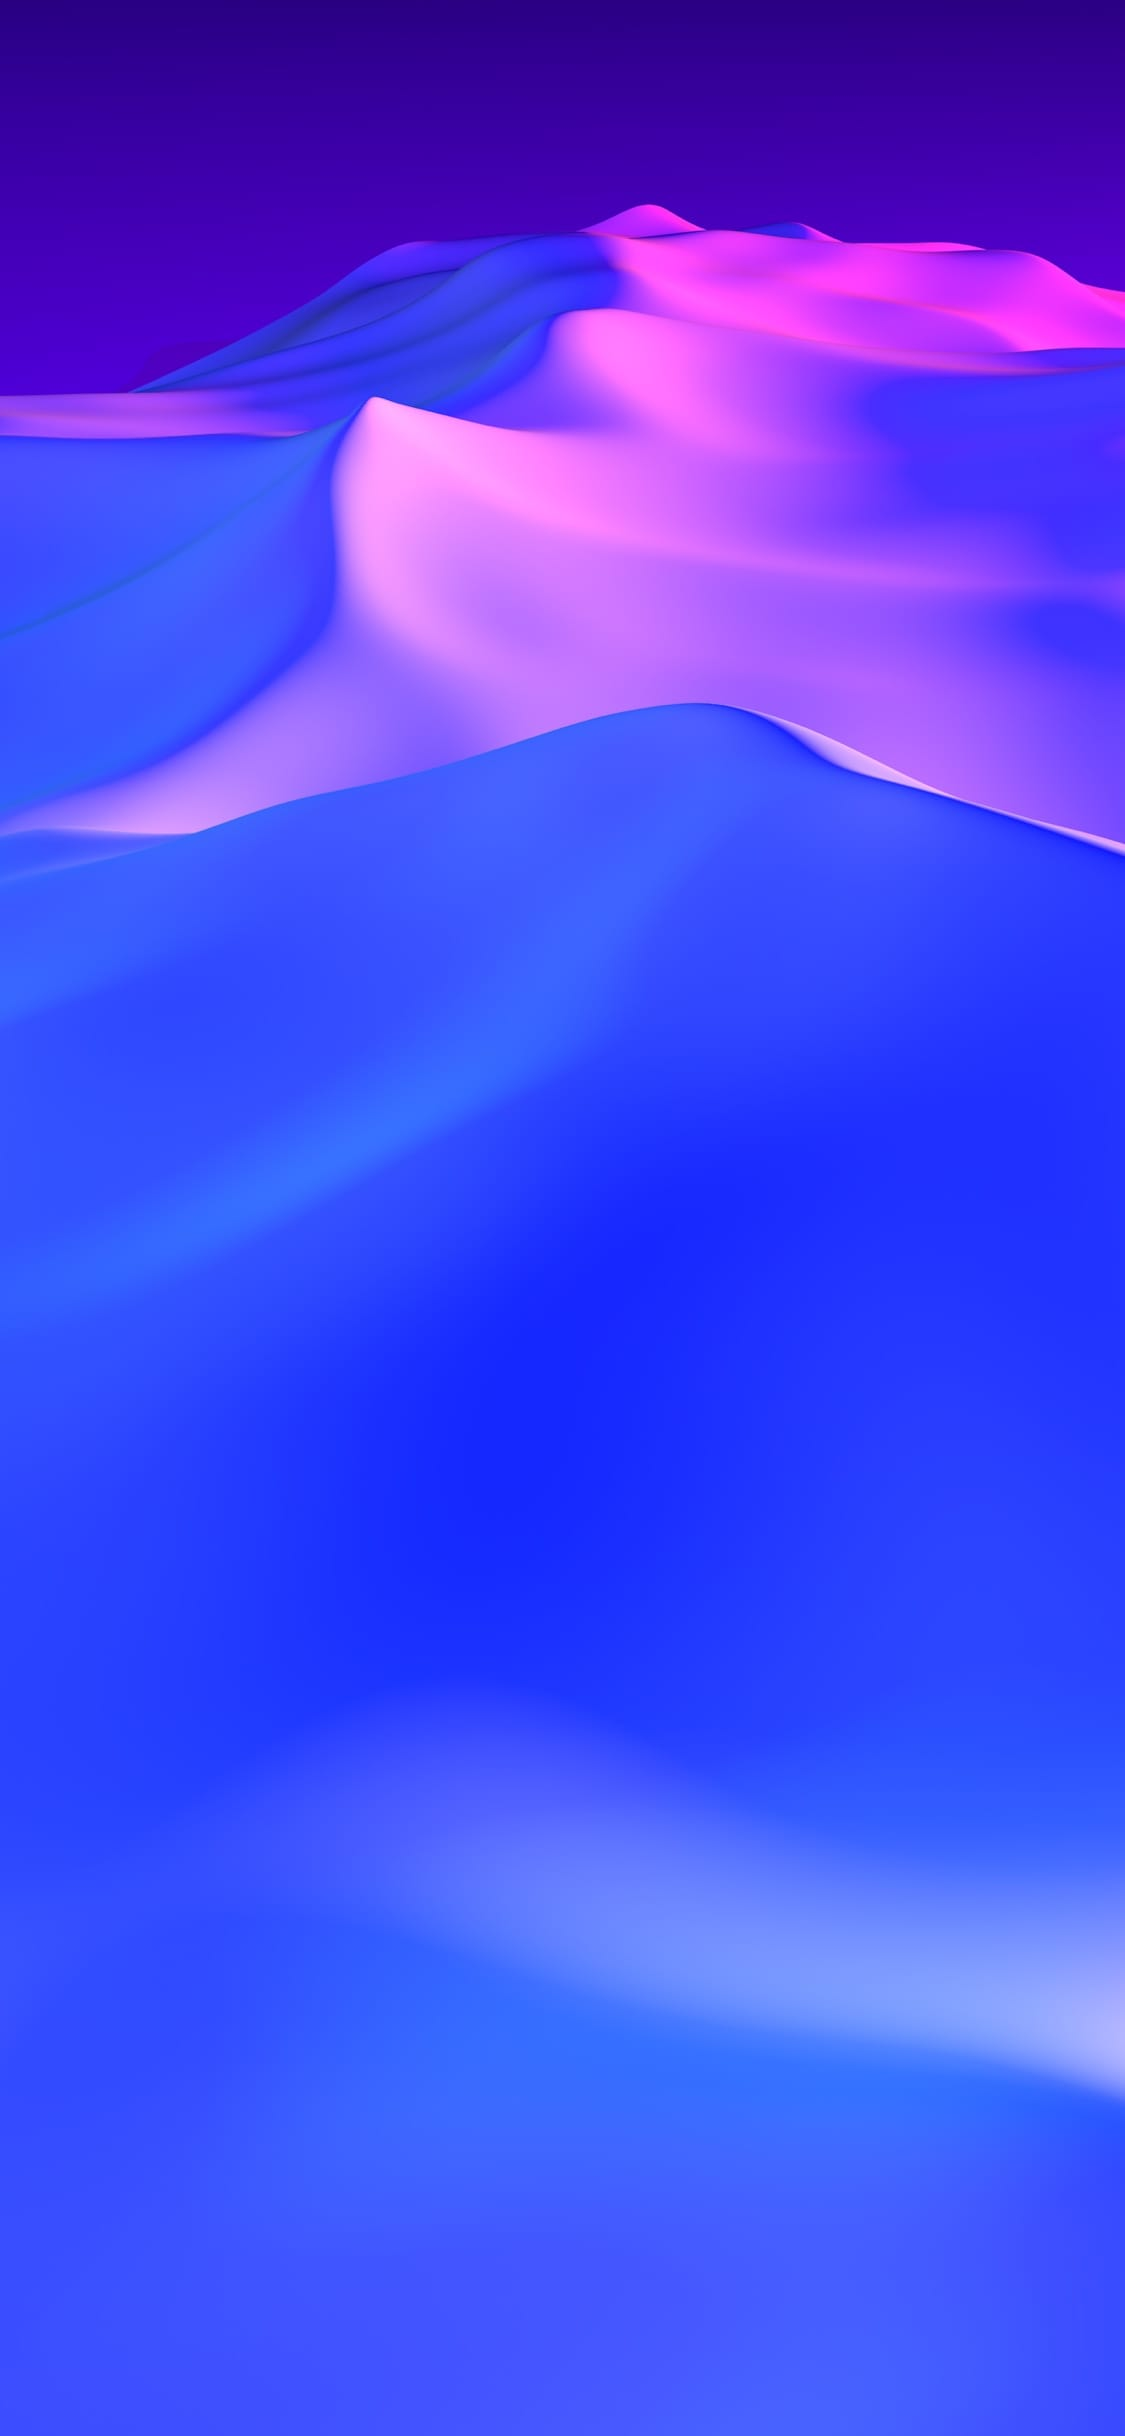 iPhone X HD Wallpapers - Wallpaper Cave